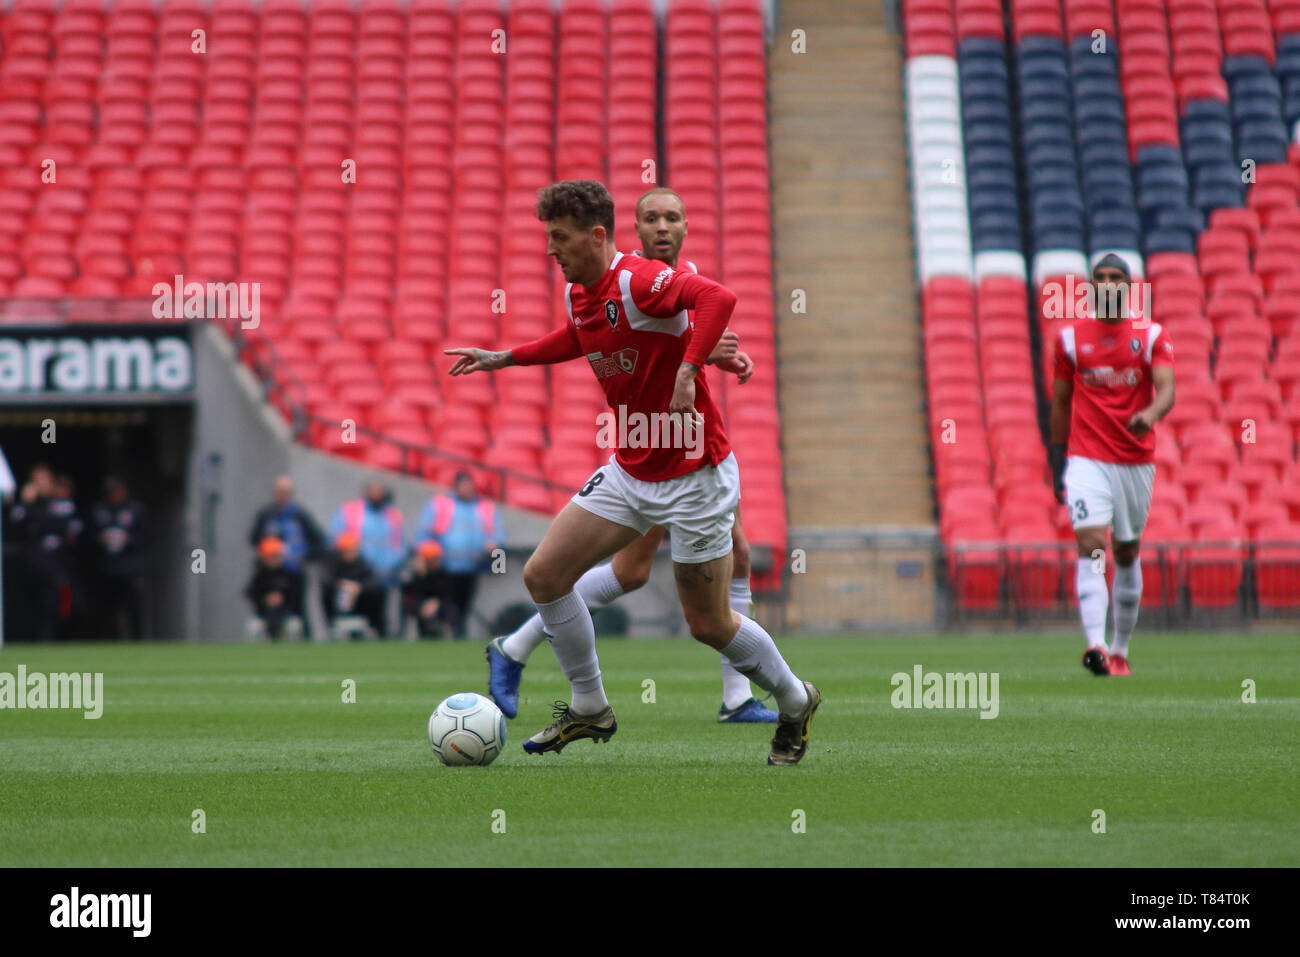 London, UK . 11th May 2019.  Salford's Danny Whitehead during the Vanarama National League Play Off Final between Salford City and AFC Fylde at Wembley Stadium, London on Saturday 11th May 2019. (Credit: Lewis Storey | MI News & Sport ) ©MI News & Sport Ltd Tel: +44 7752 571576 e-mail: markf@mediaimage.co.uk Address: 1 Victoria Grove, Stockton on Tees, TS19 7EL Stock Photo